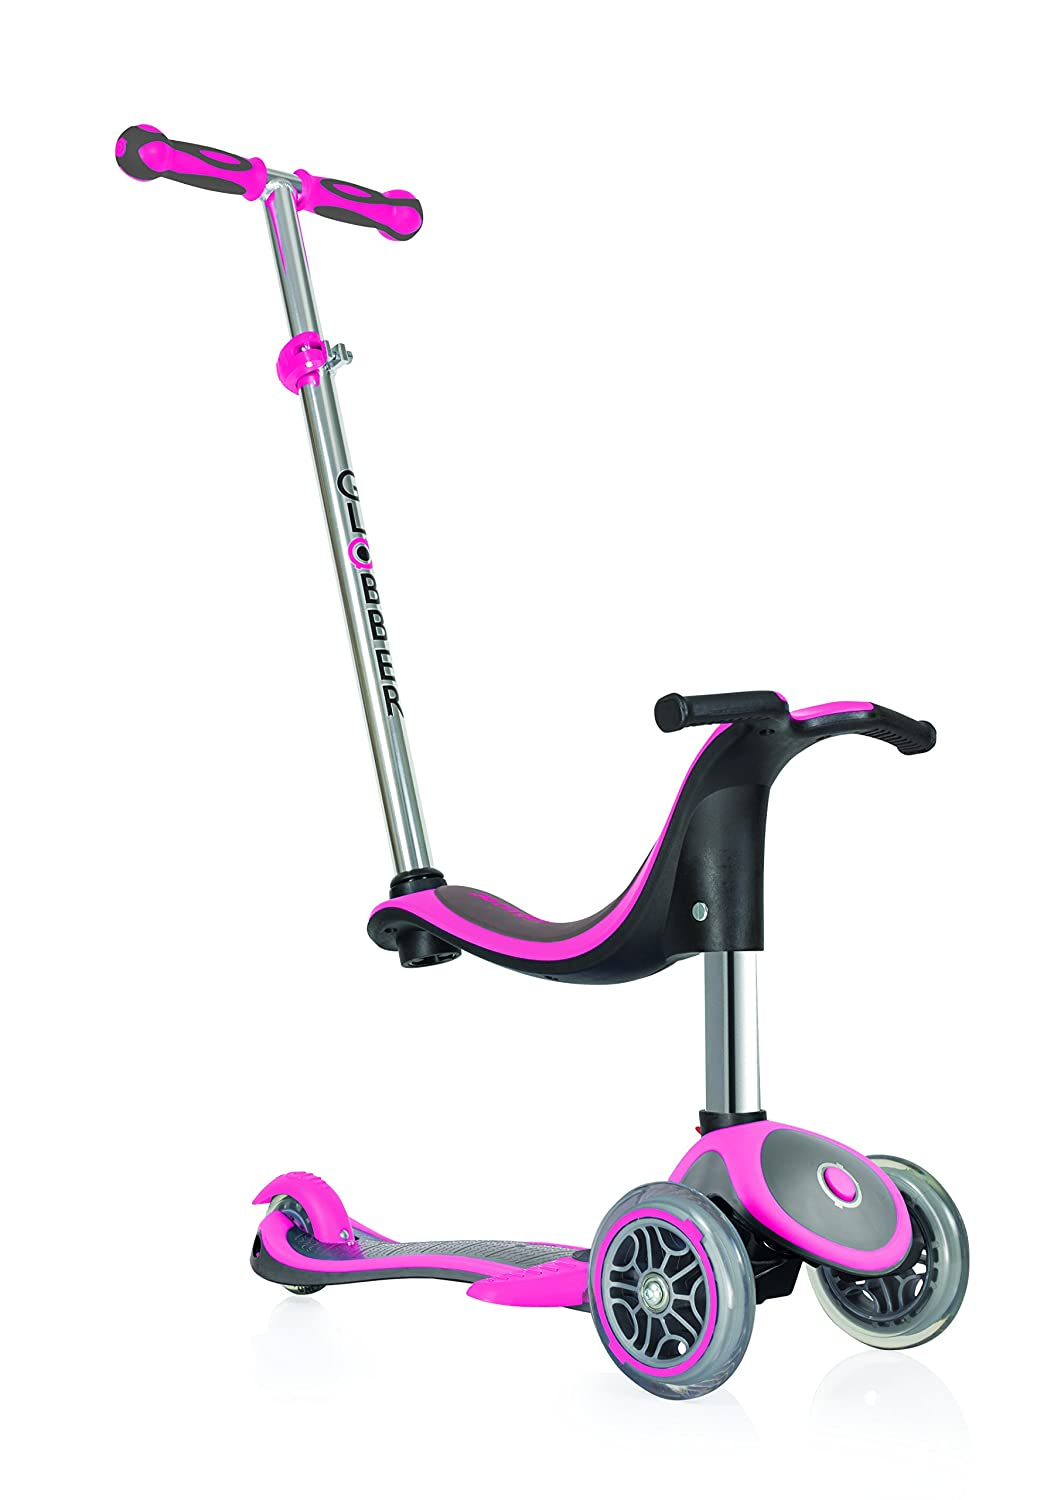 Globber Kinder Evo in Plus Scooter, Kinder, Evo 4-in-1 Plus Rosa Nicht zutreffend 453-132